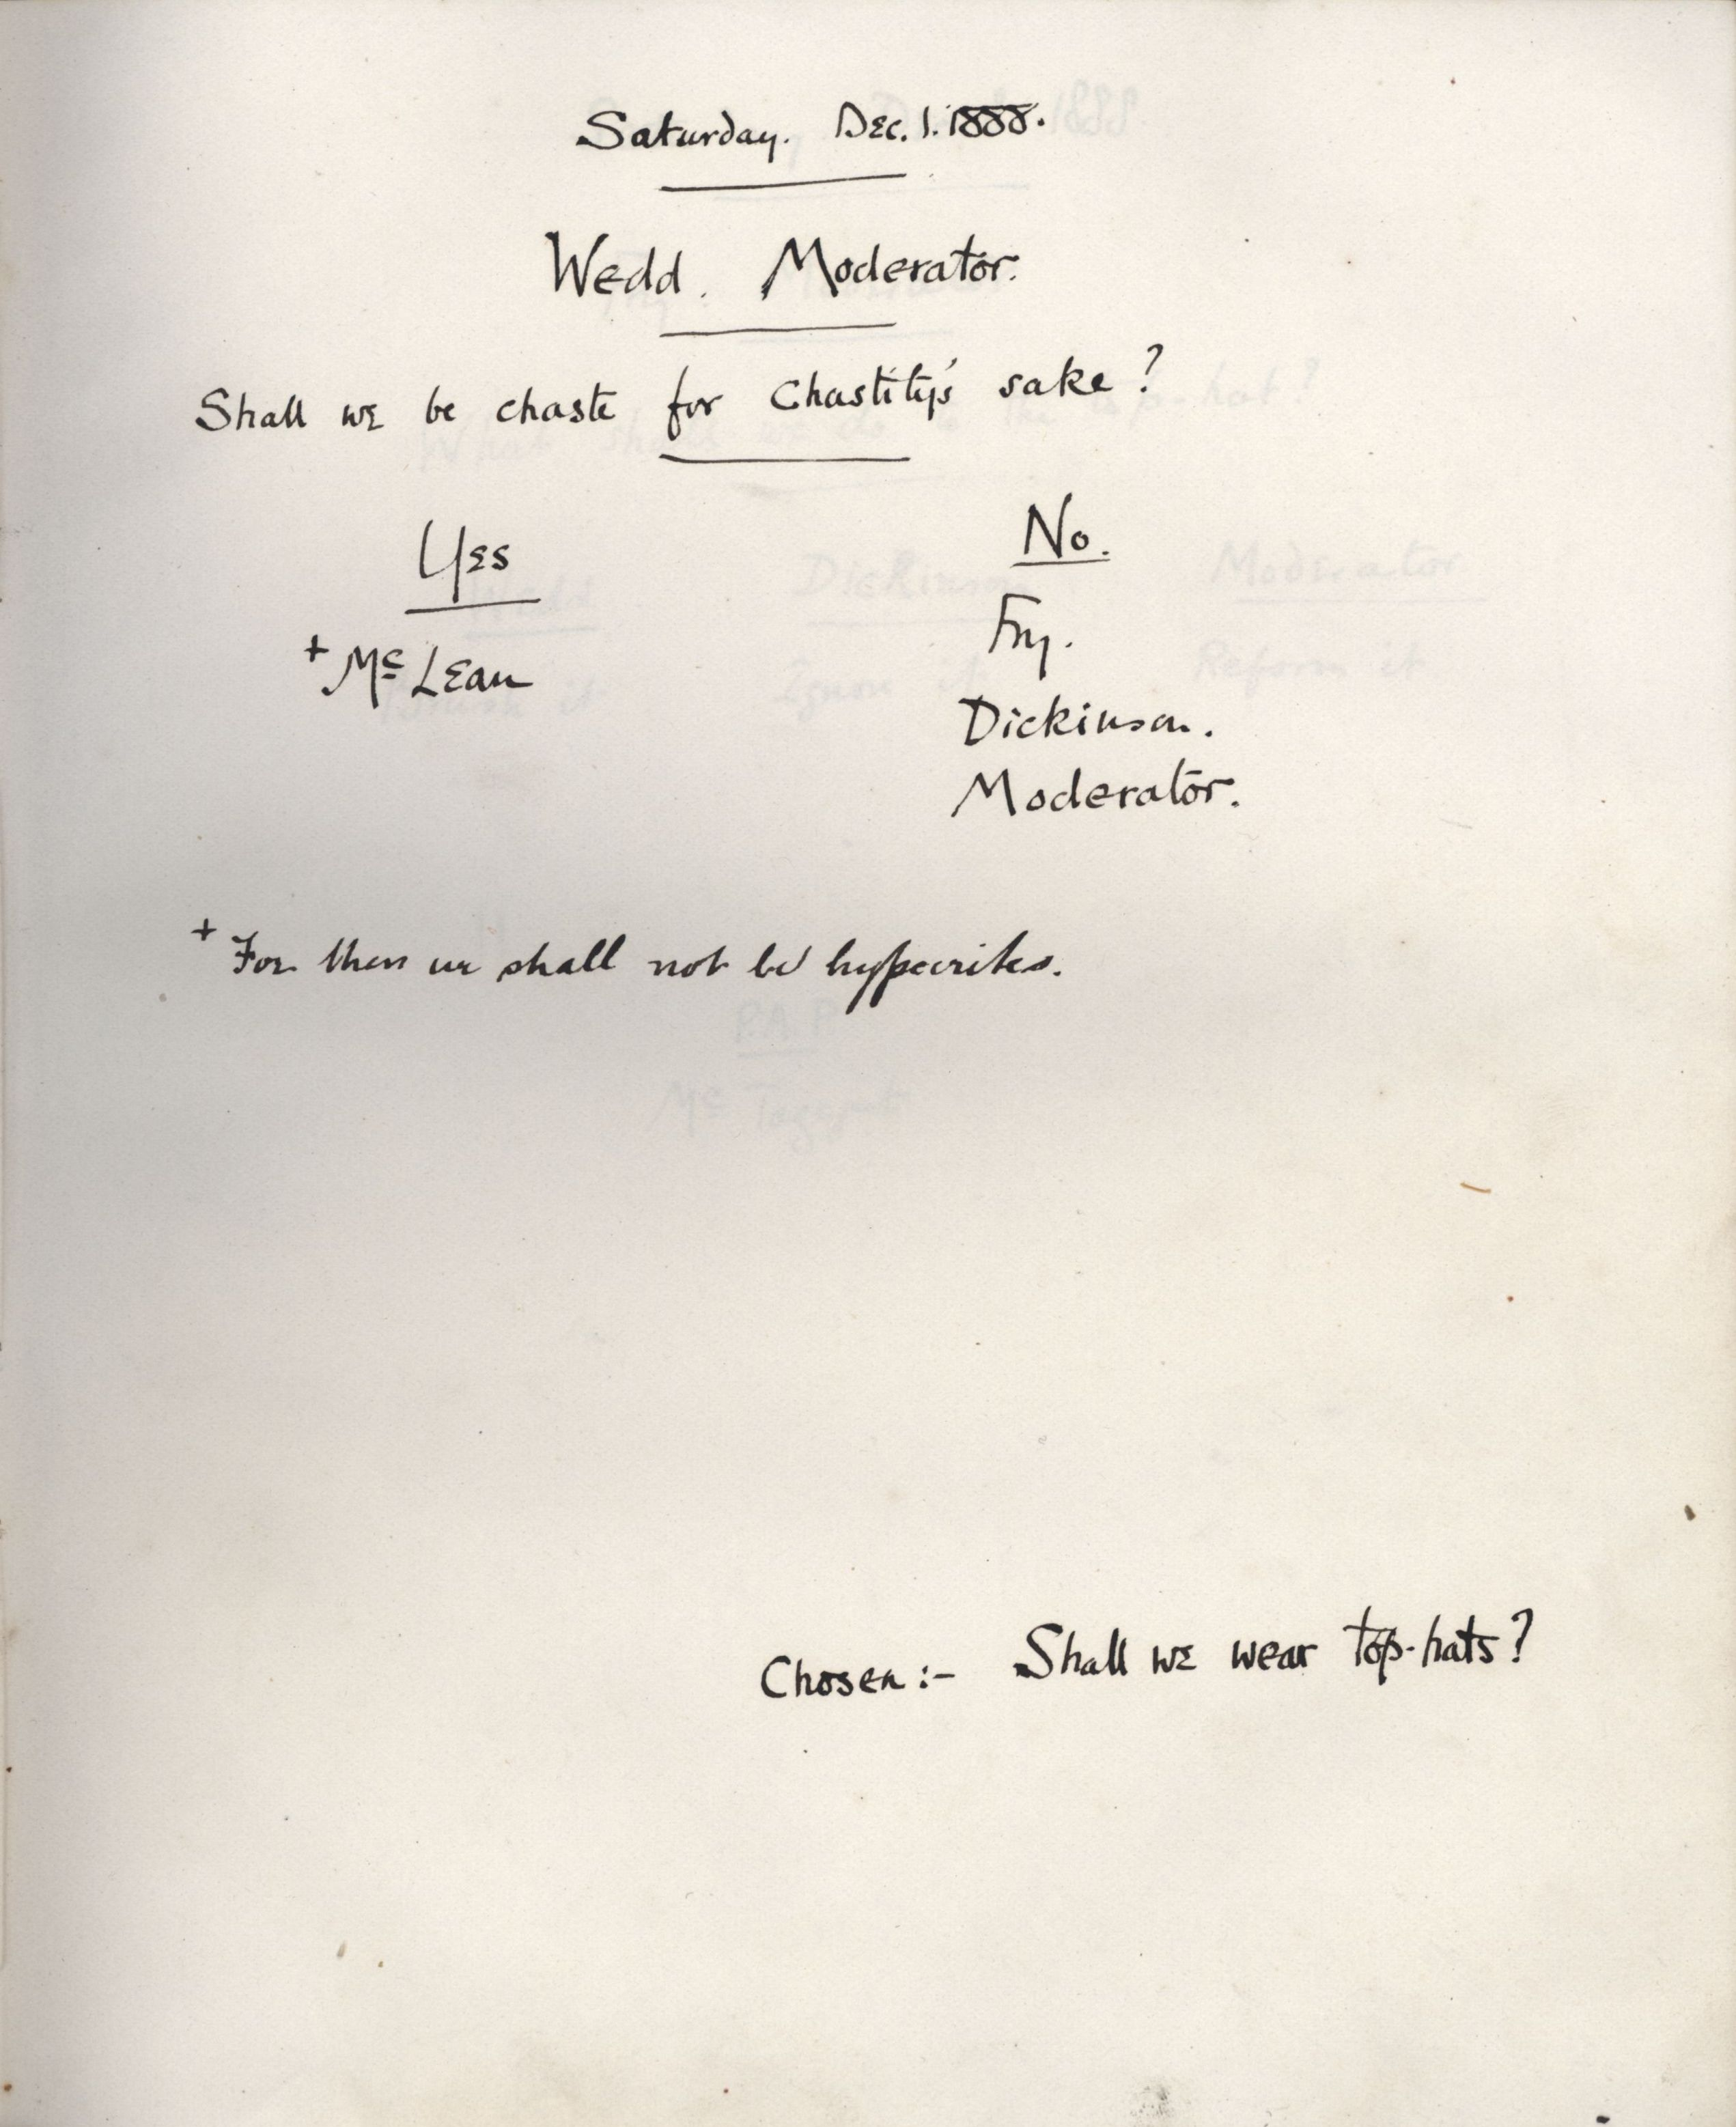 Minutes of a meeting in which Wedd asked 'Shall we be chaste for chastity's sake?' [KCAS/39/1/11, 1 December 1888]